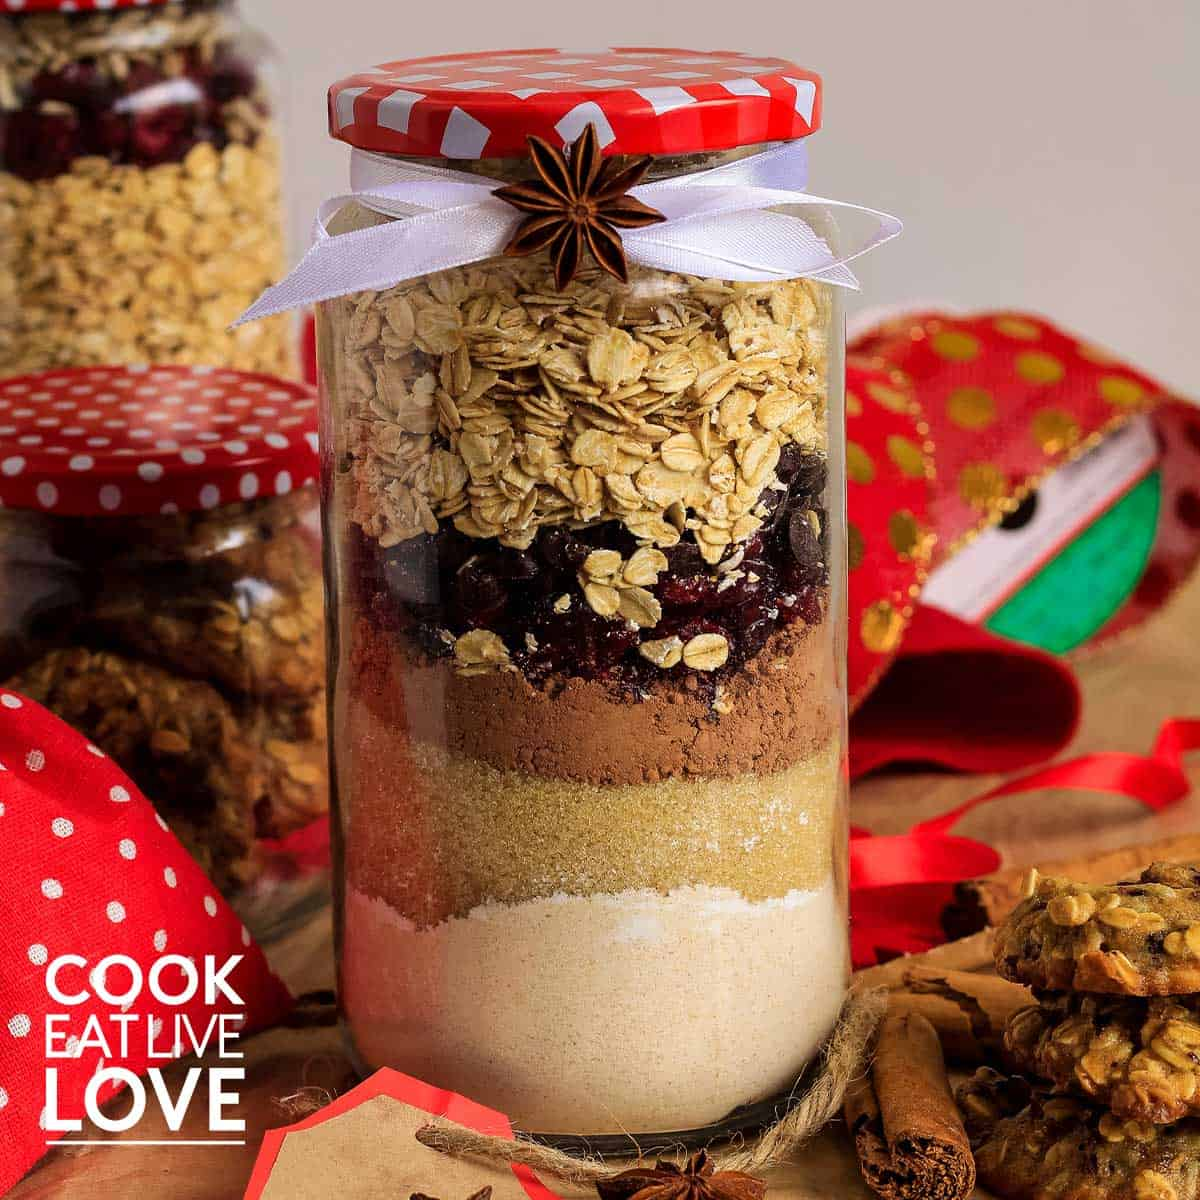 Vegan chocolate oatmeal cookie ingredients in jar to give as gift.